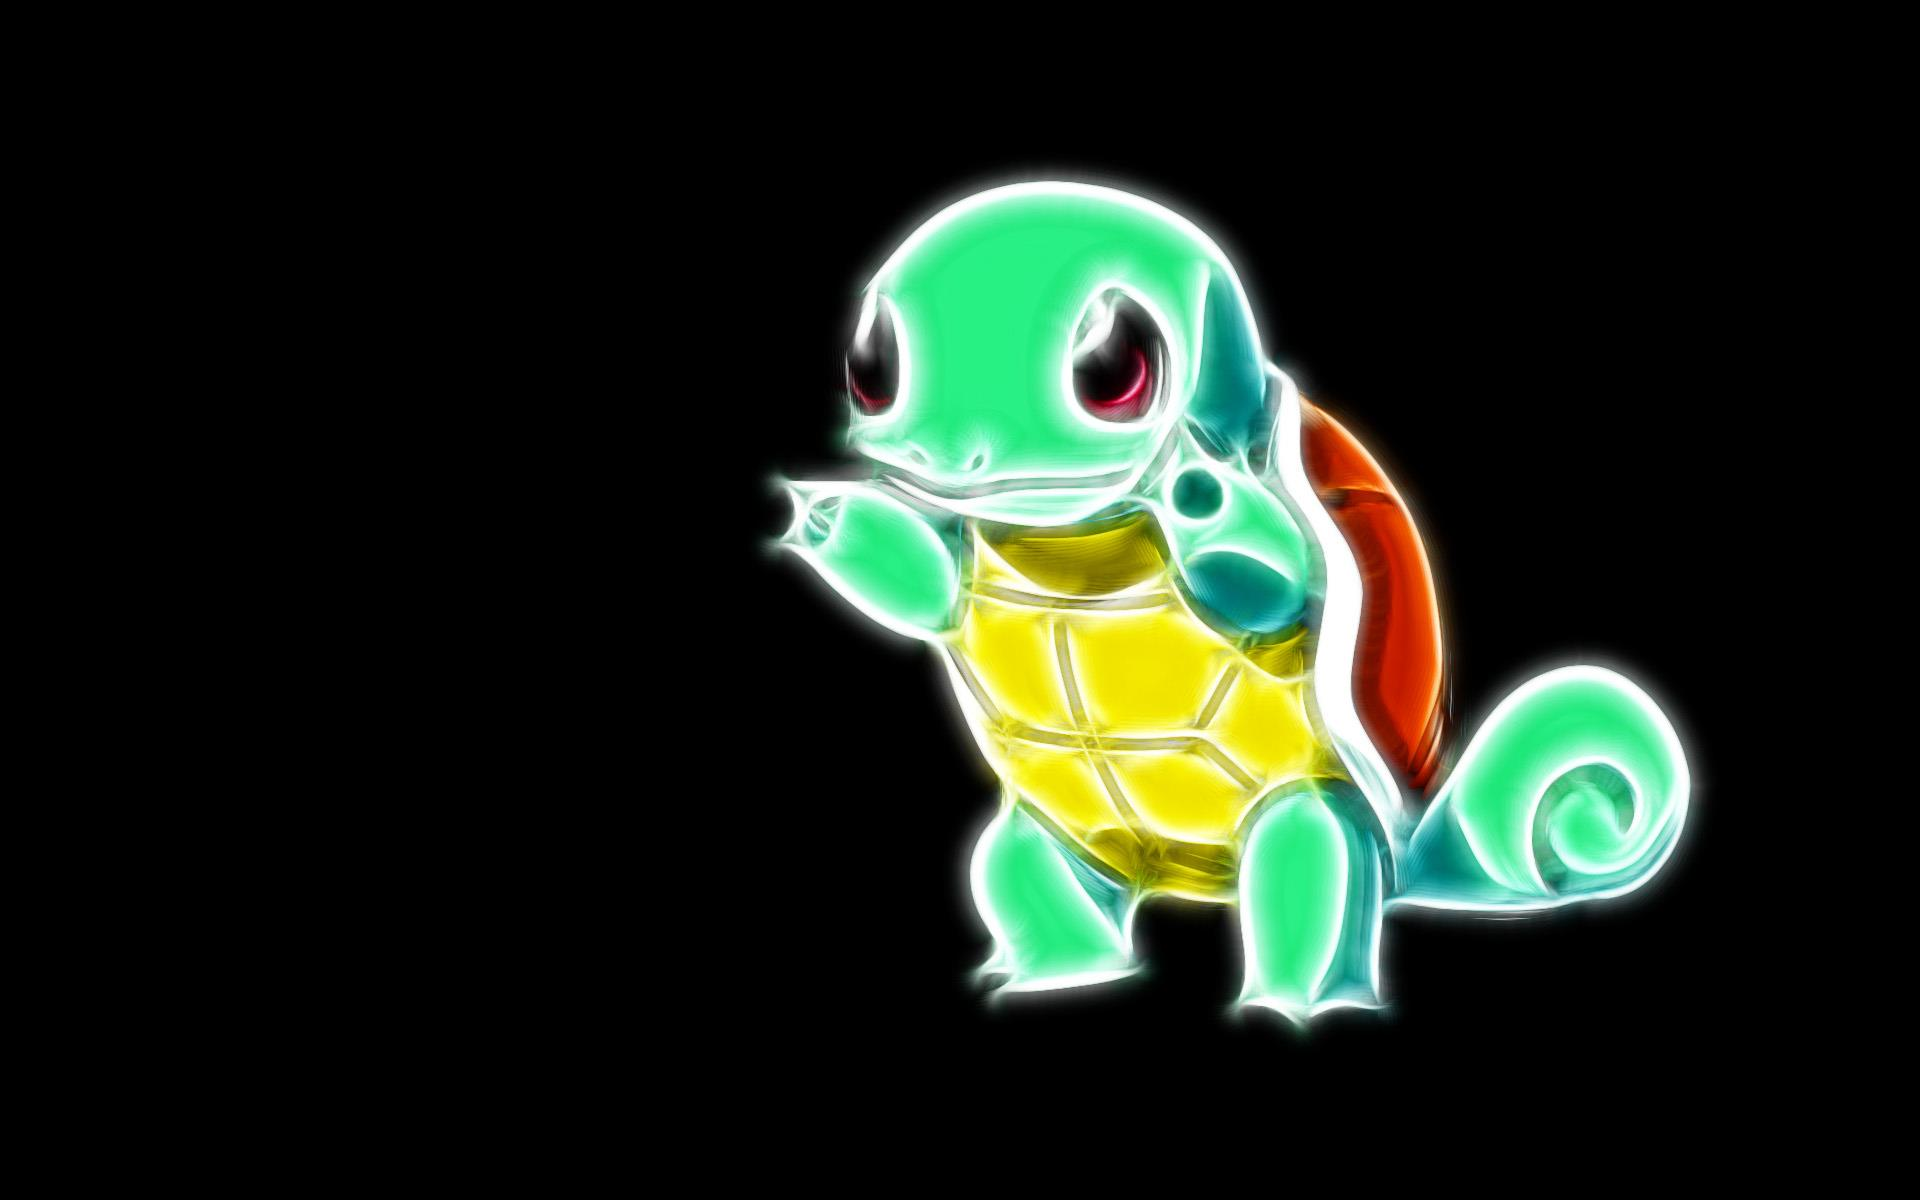 squirtle-pokemon-wallpaper-free-download